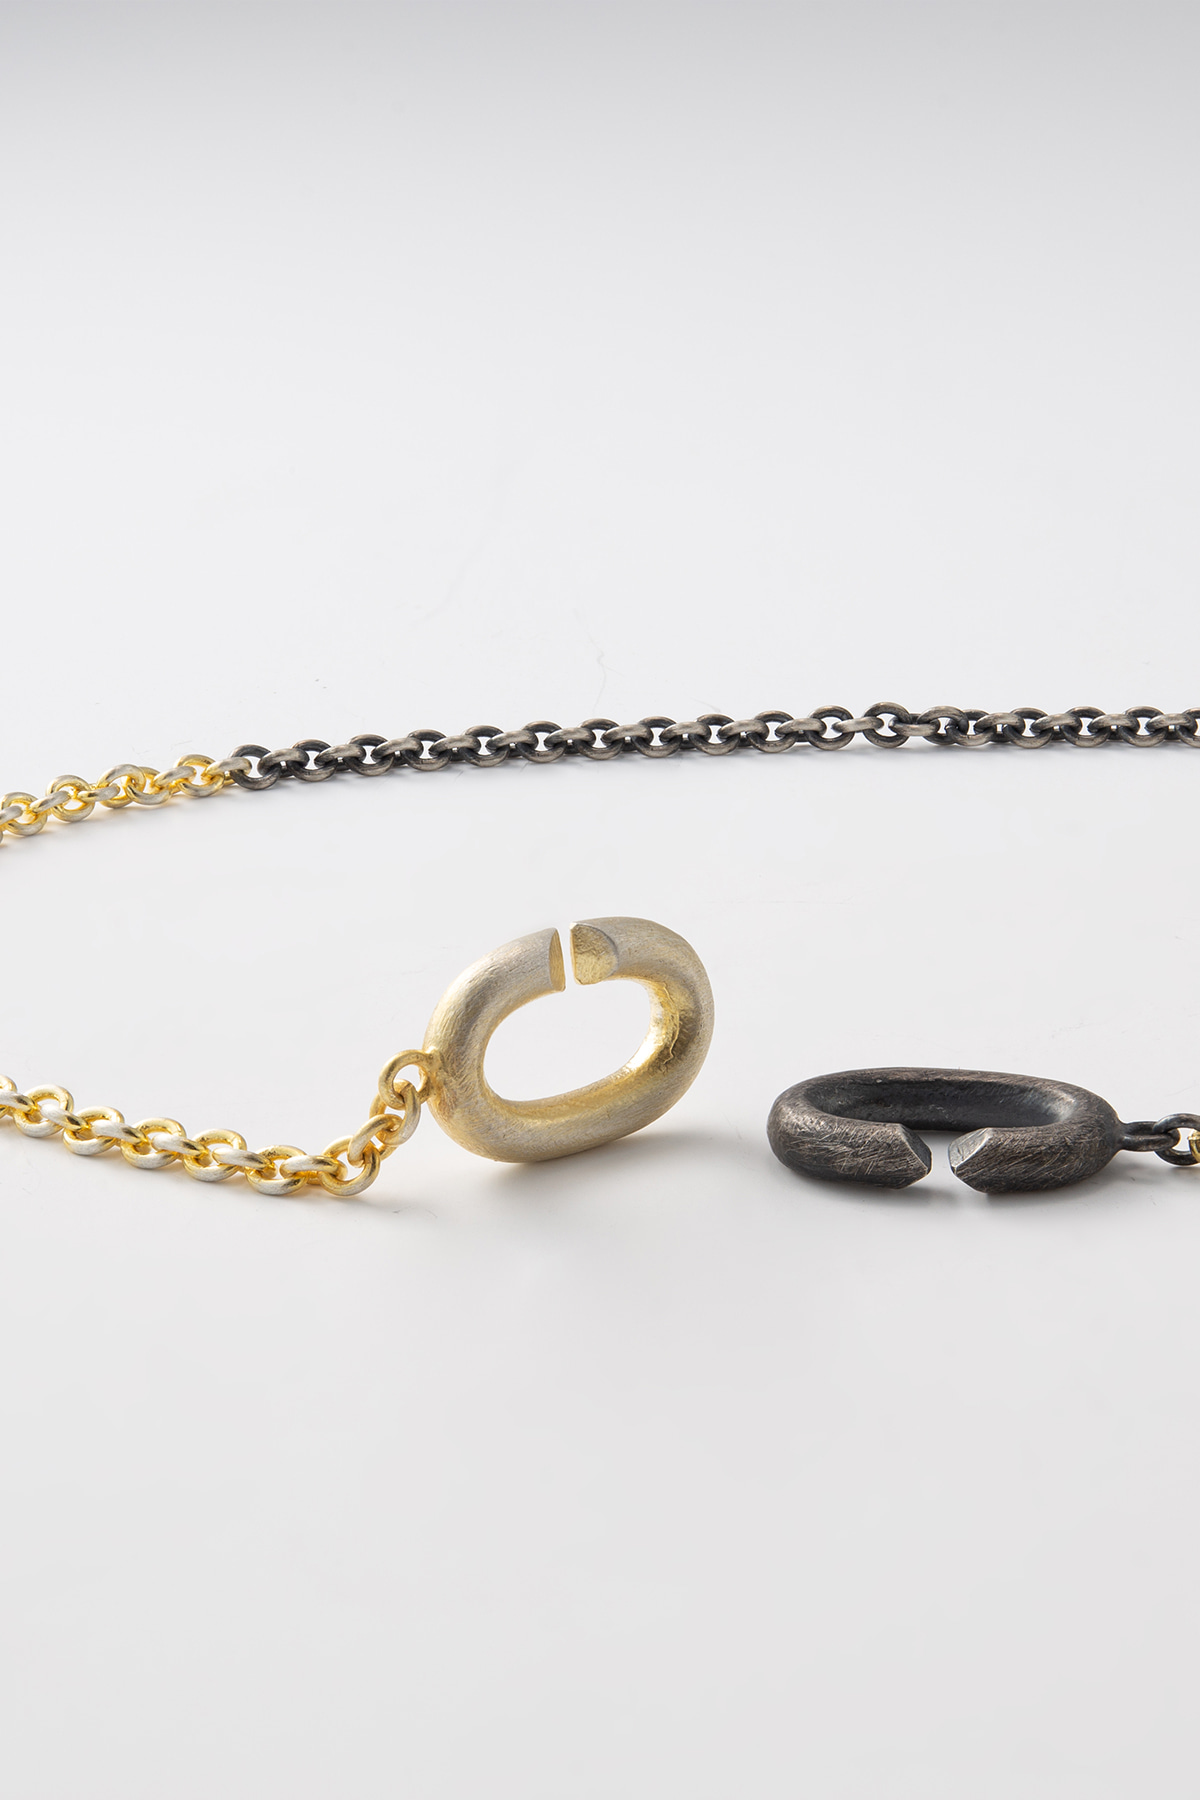 Black and Gold Clasp Design Necklace